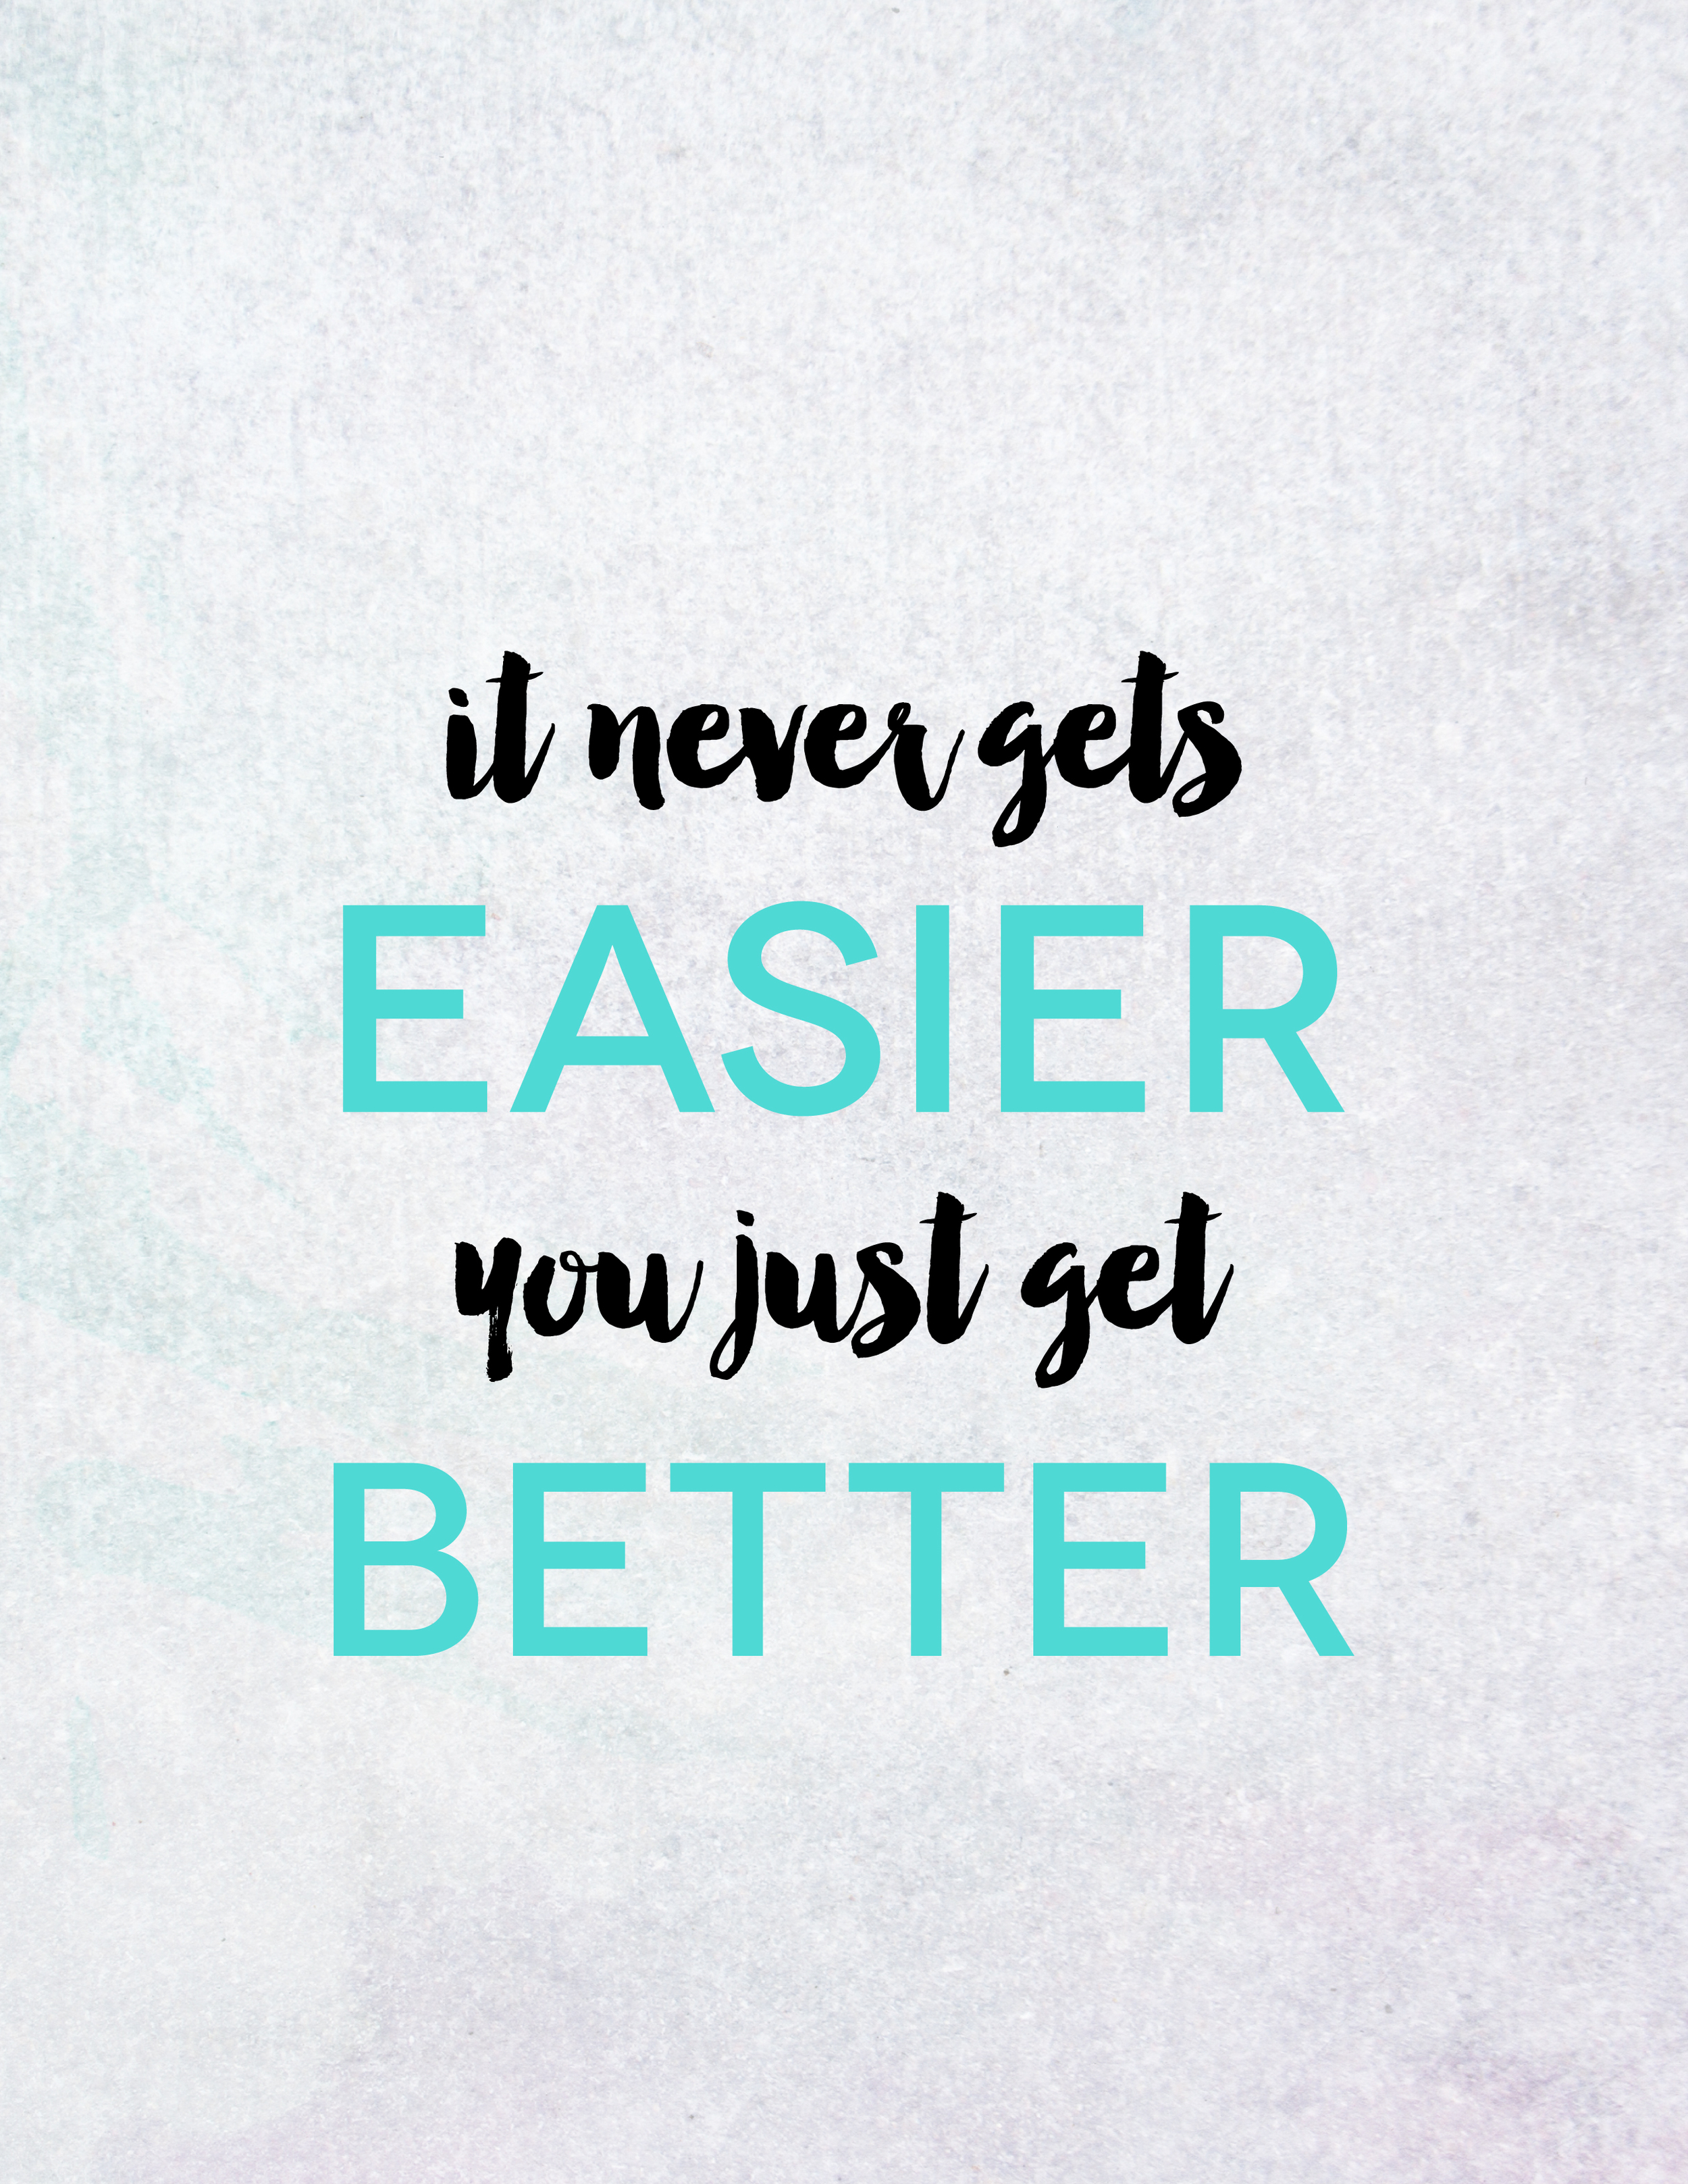 It never get's easier, you just get better | Monday Mantra, Motivational Quotes